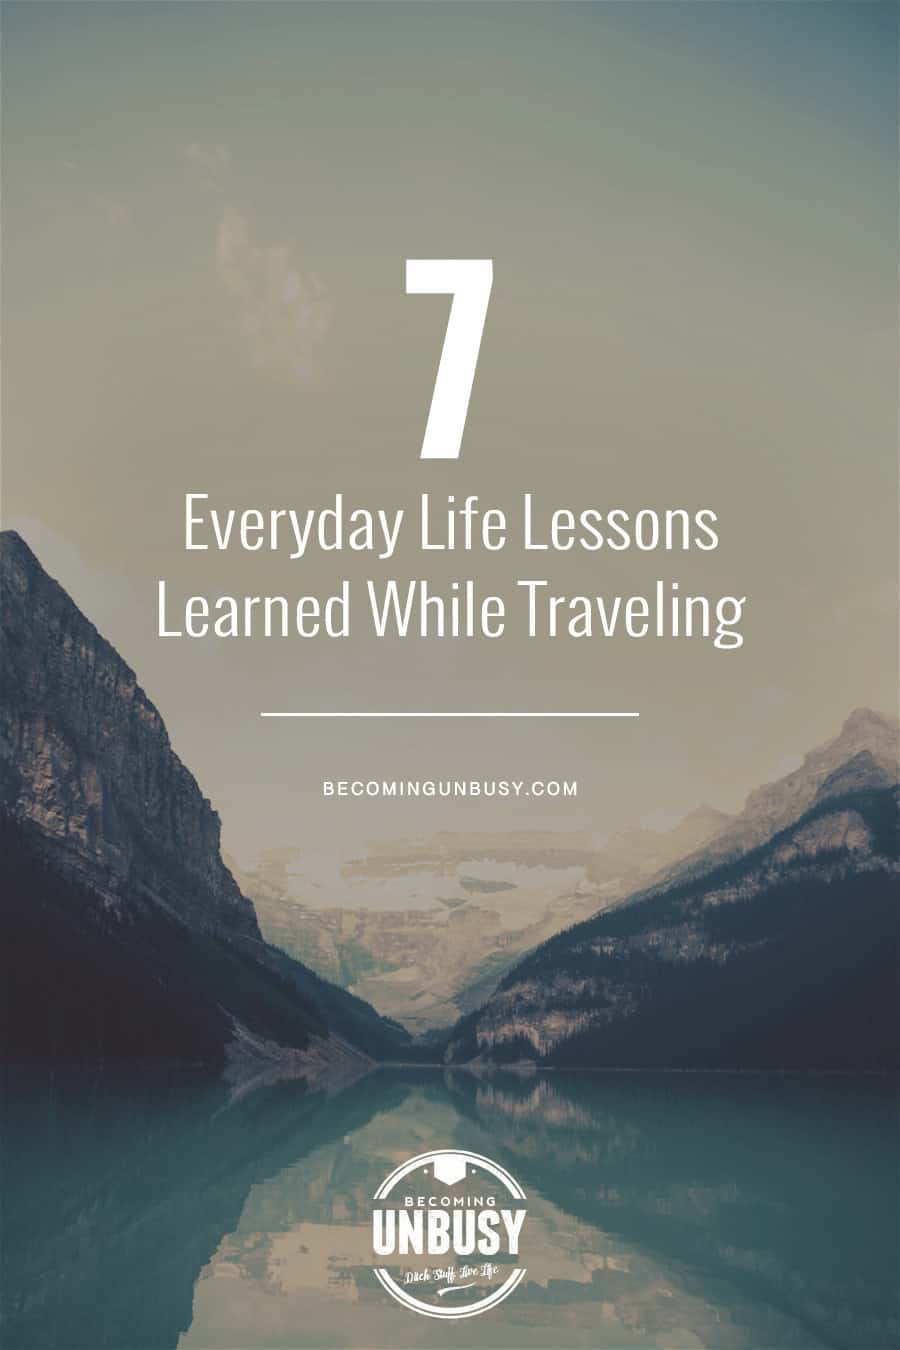 7 Everyday Life Lessons Learned While Full-Time Traveling: On-the-road life lessons you can apply to your life whether you're traveling or not.